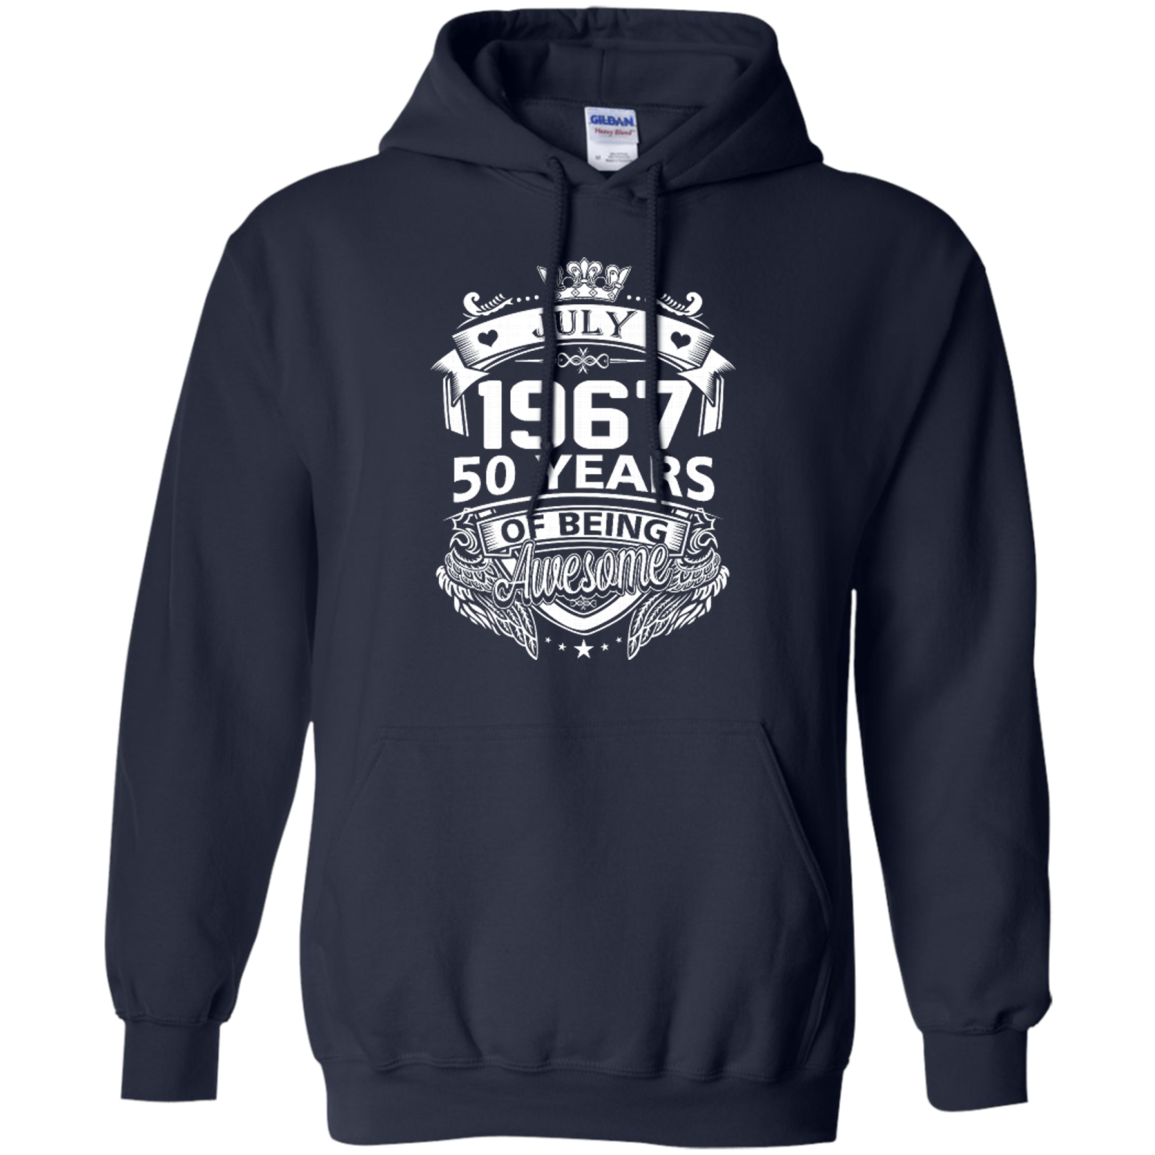 7e46d57f ... Birthday July 1967 50 Years Of Being Awesome Hoodies Sweatshirts ...